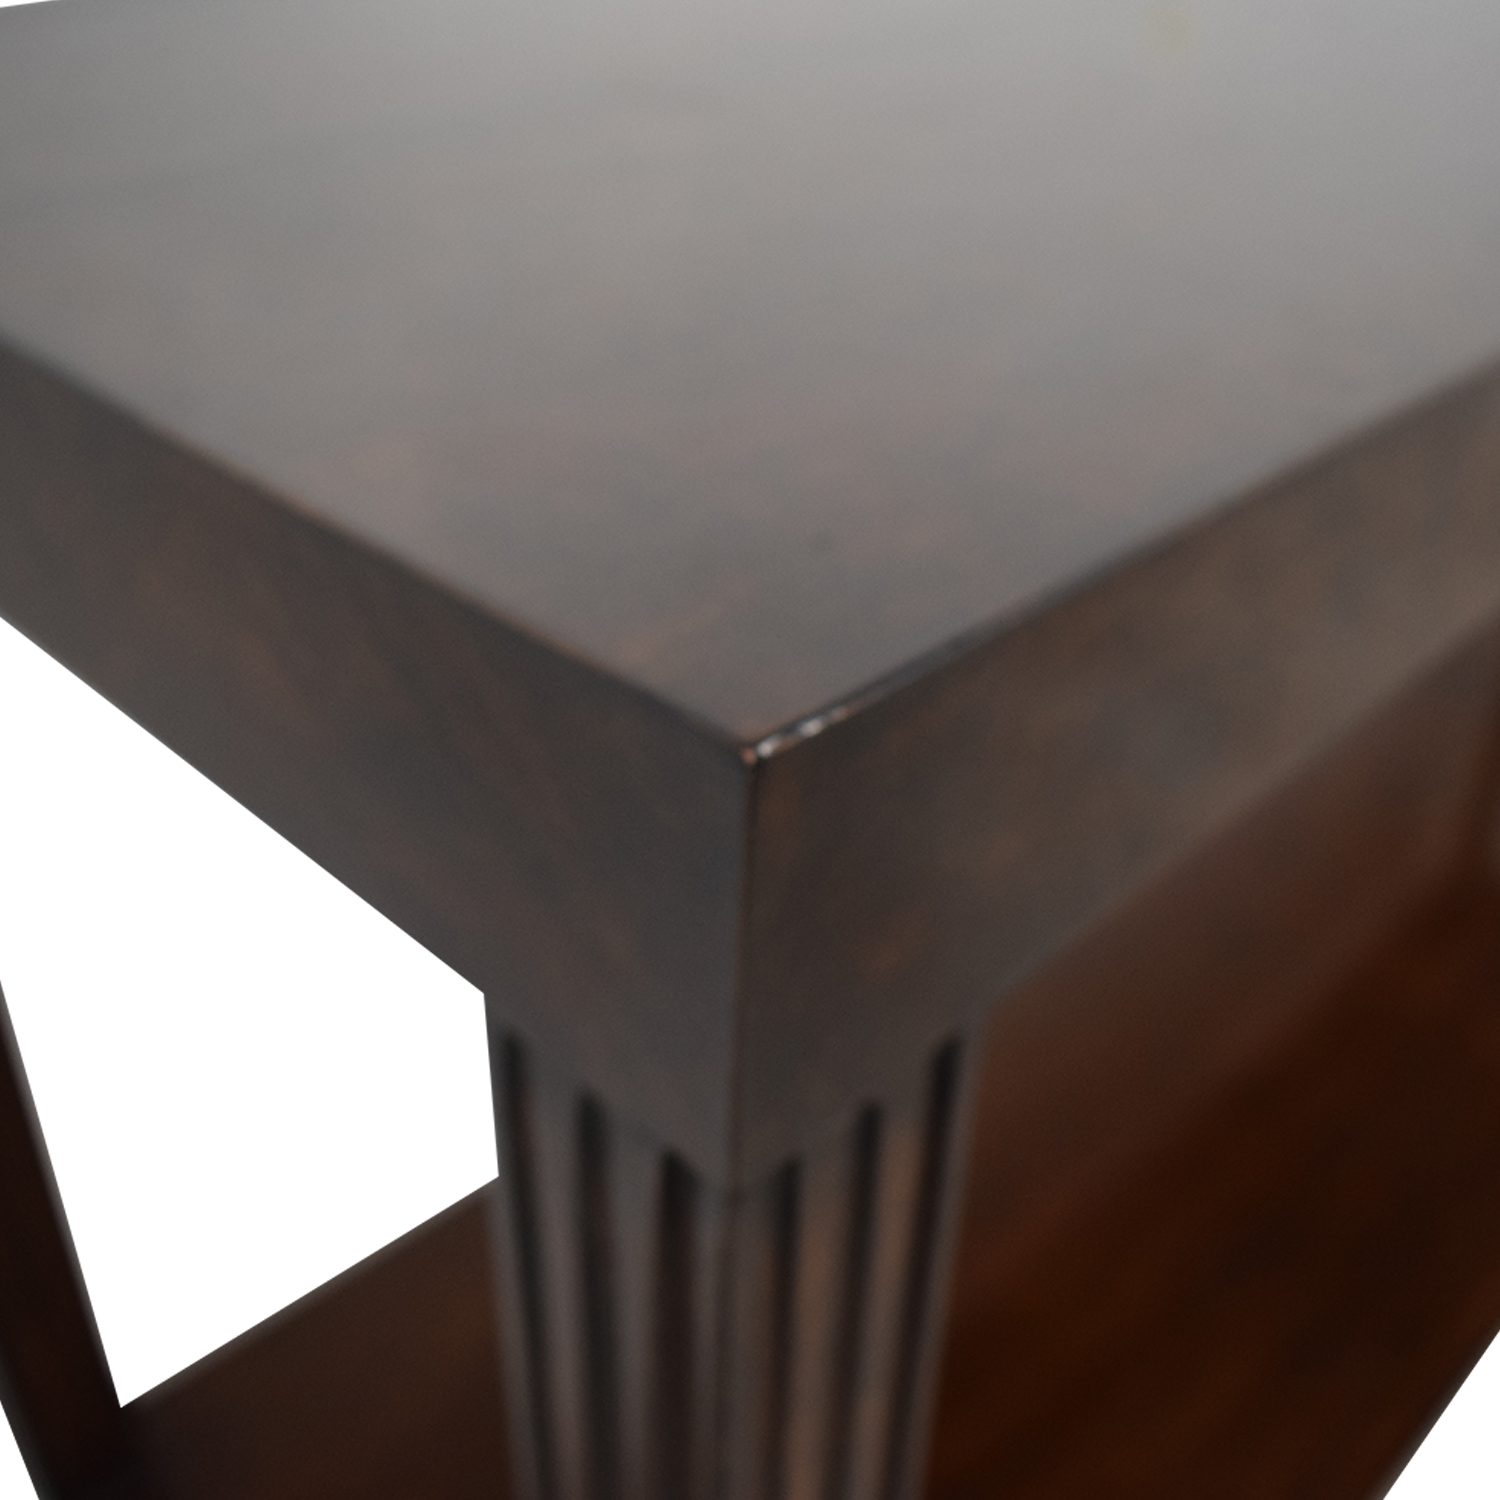 Console Table dimensions